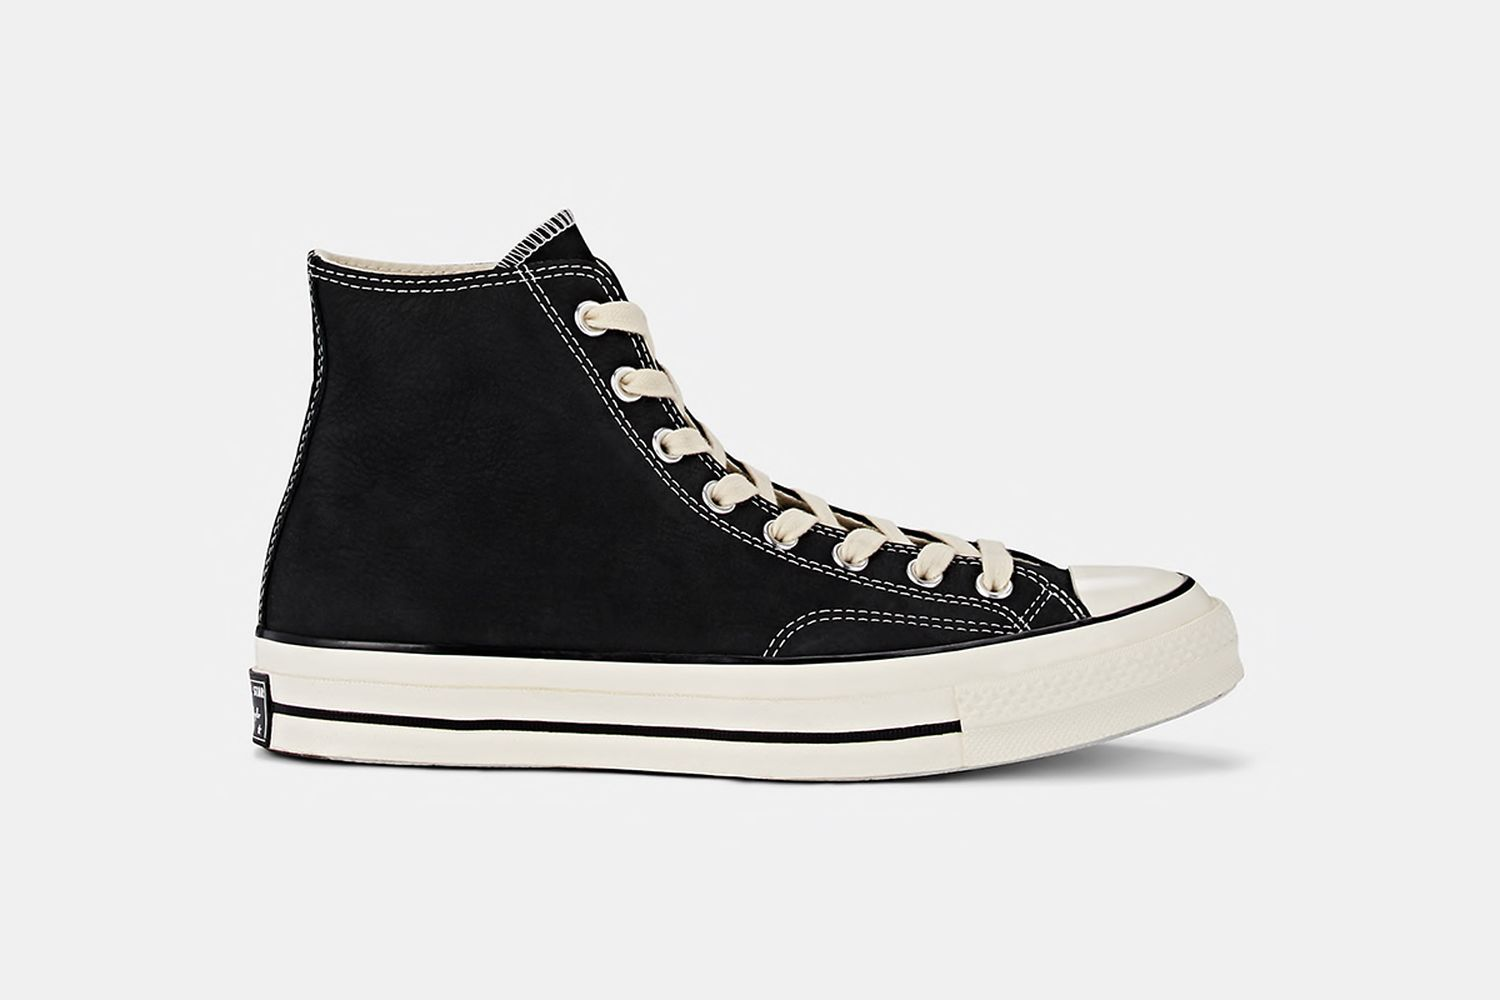 Chuck Taylor All Star '70 Nubuck